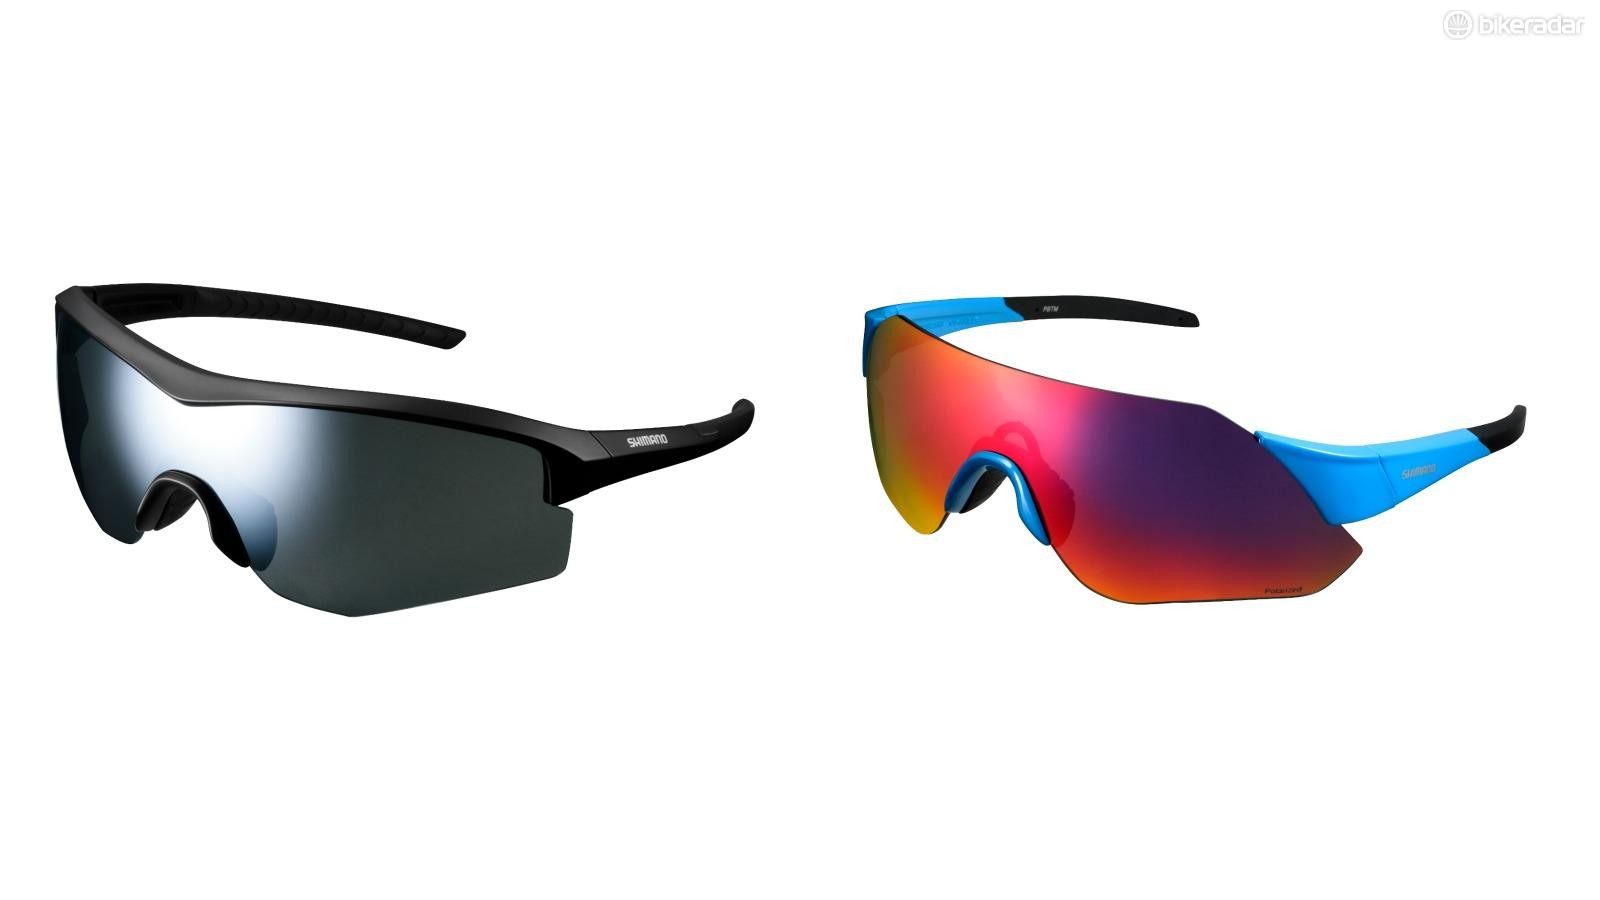 These new technical shades were developed together with LottoNL-Jumbo